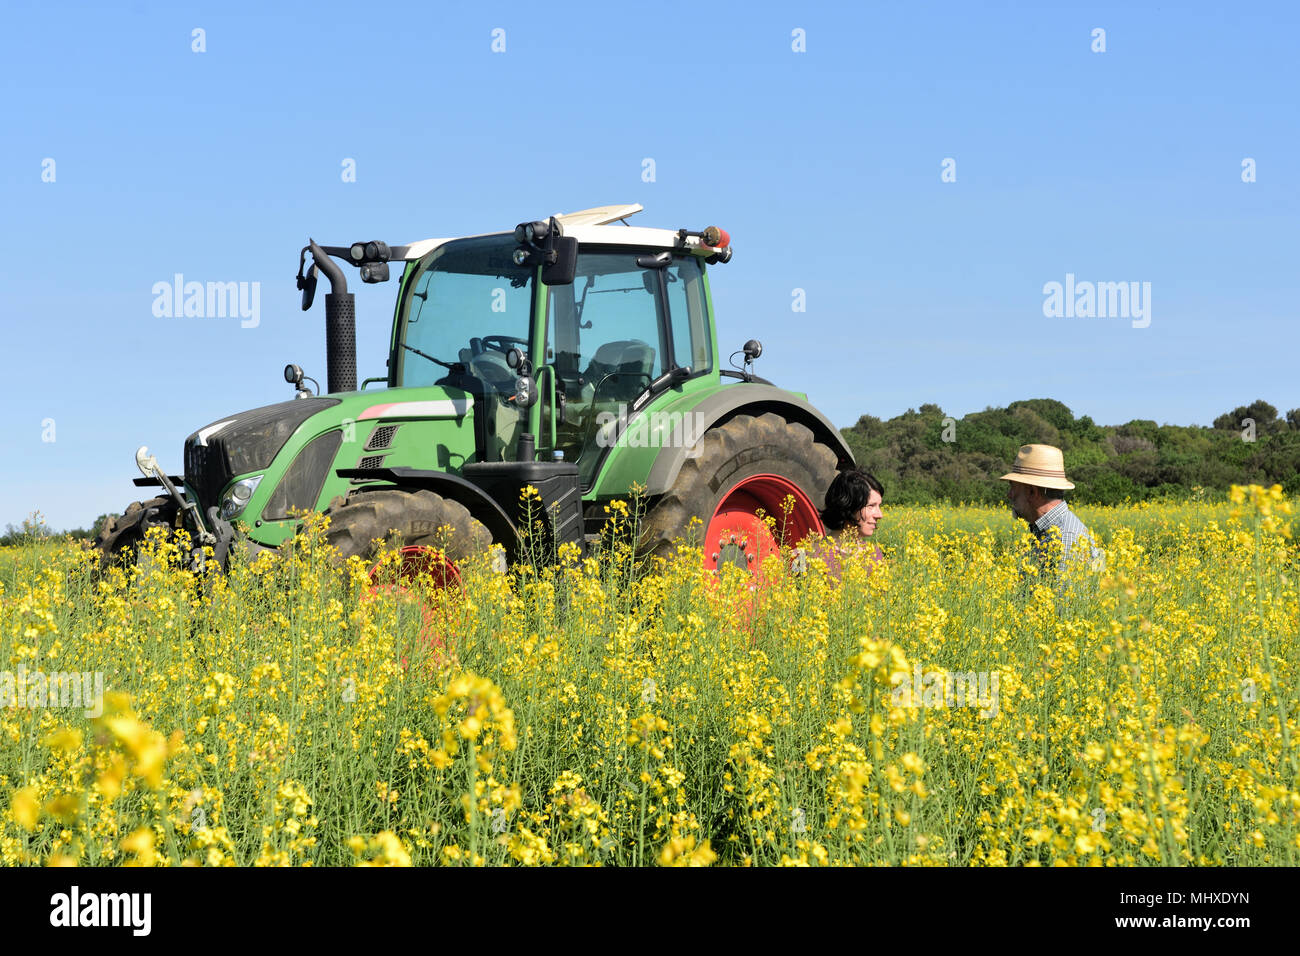 couple of farmers in a canola field with a tractor - Stock Image